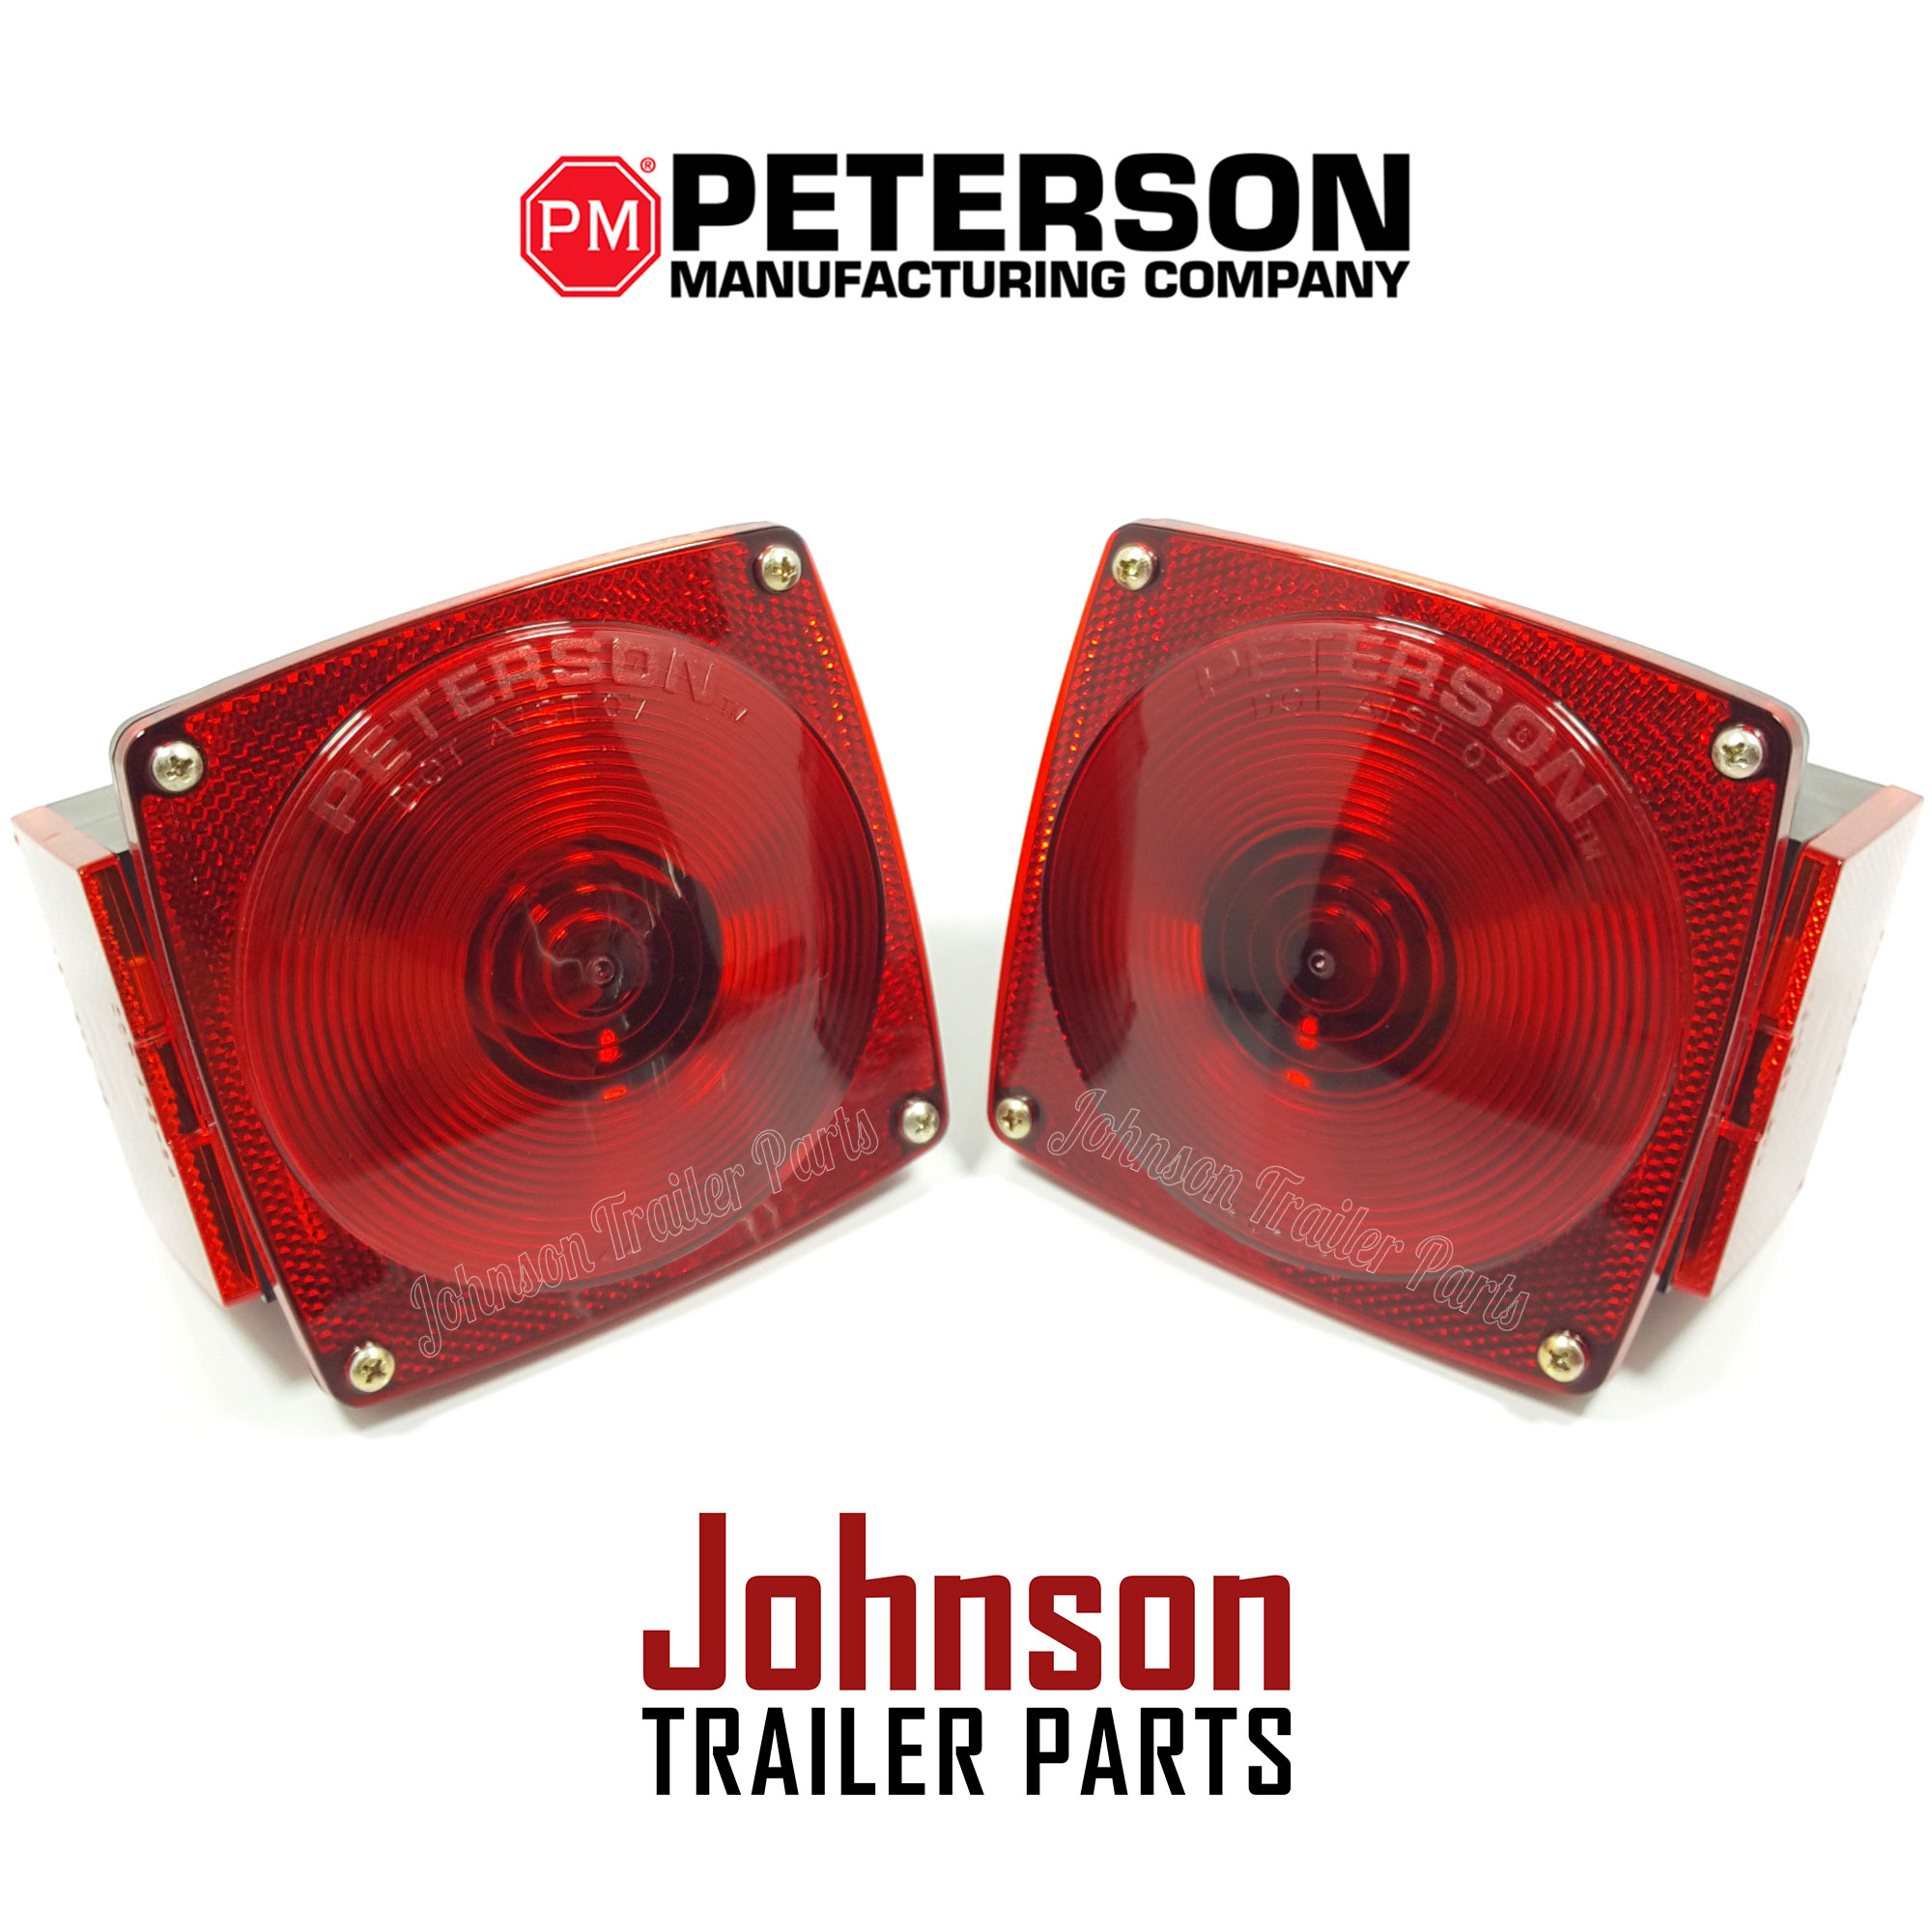 peterson trailer lights wiring diagram square d hand off auto pair of tail pm 440 440l stop turn